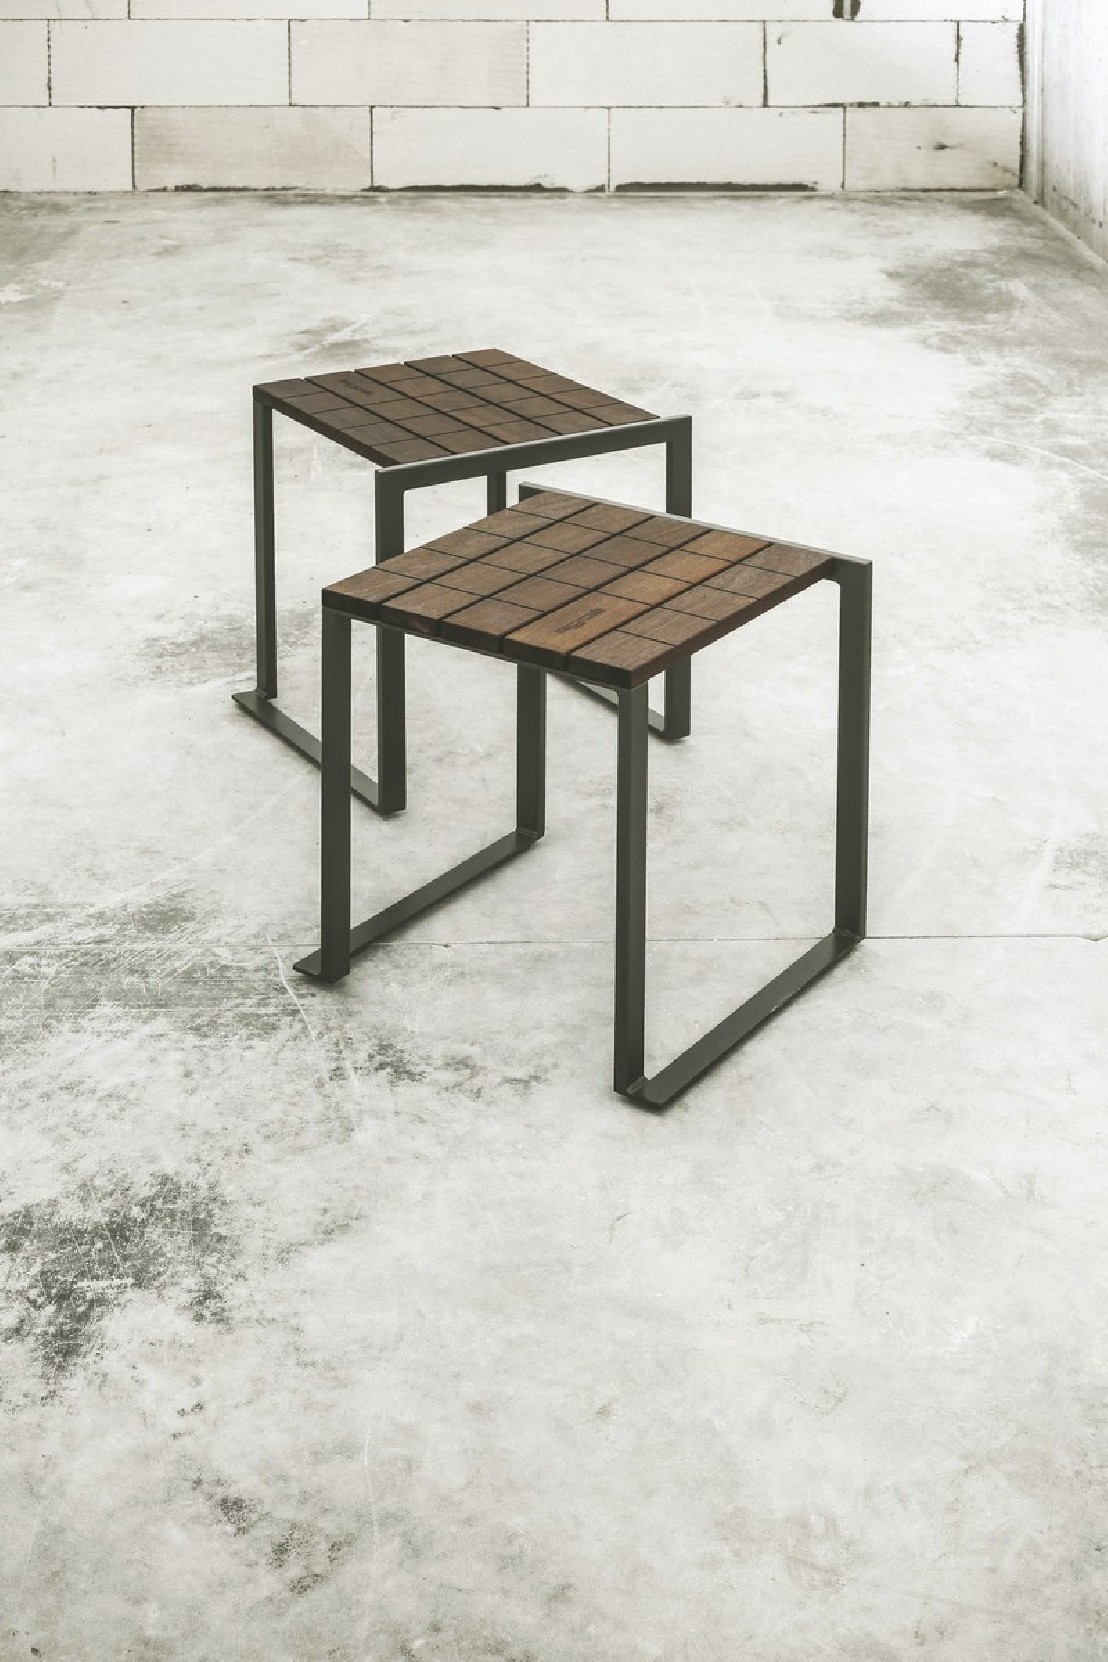 tabouret ext rieur de jardin bistrot en bois massif et acier de couleur seanroyale. Black Bedroom Furniture Sets. Home Design Ideas